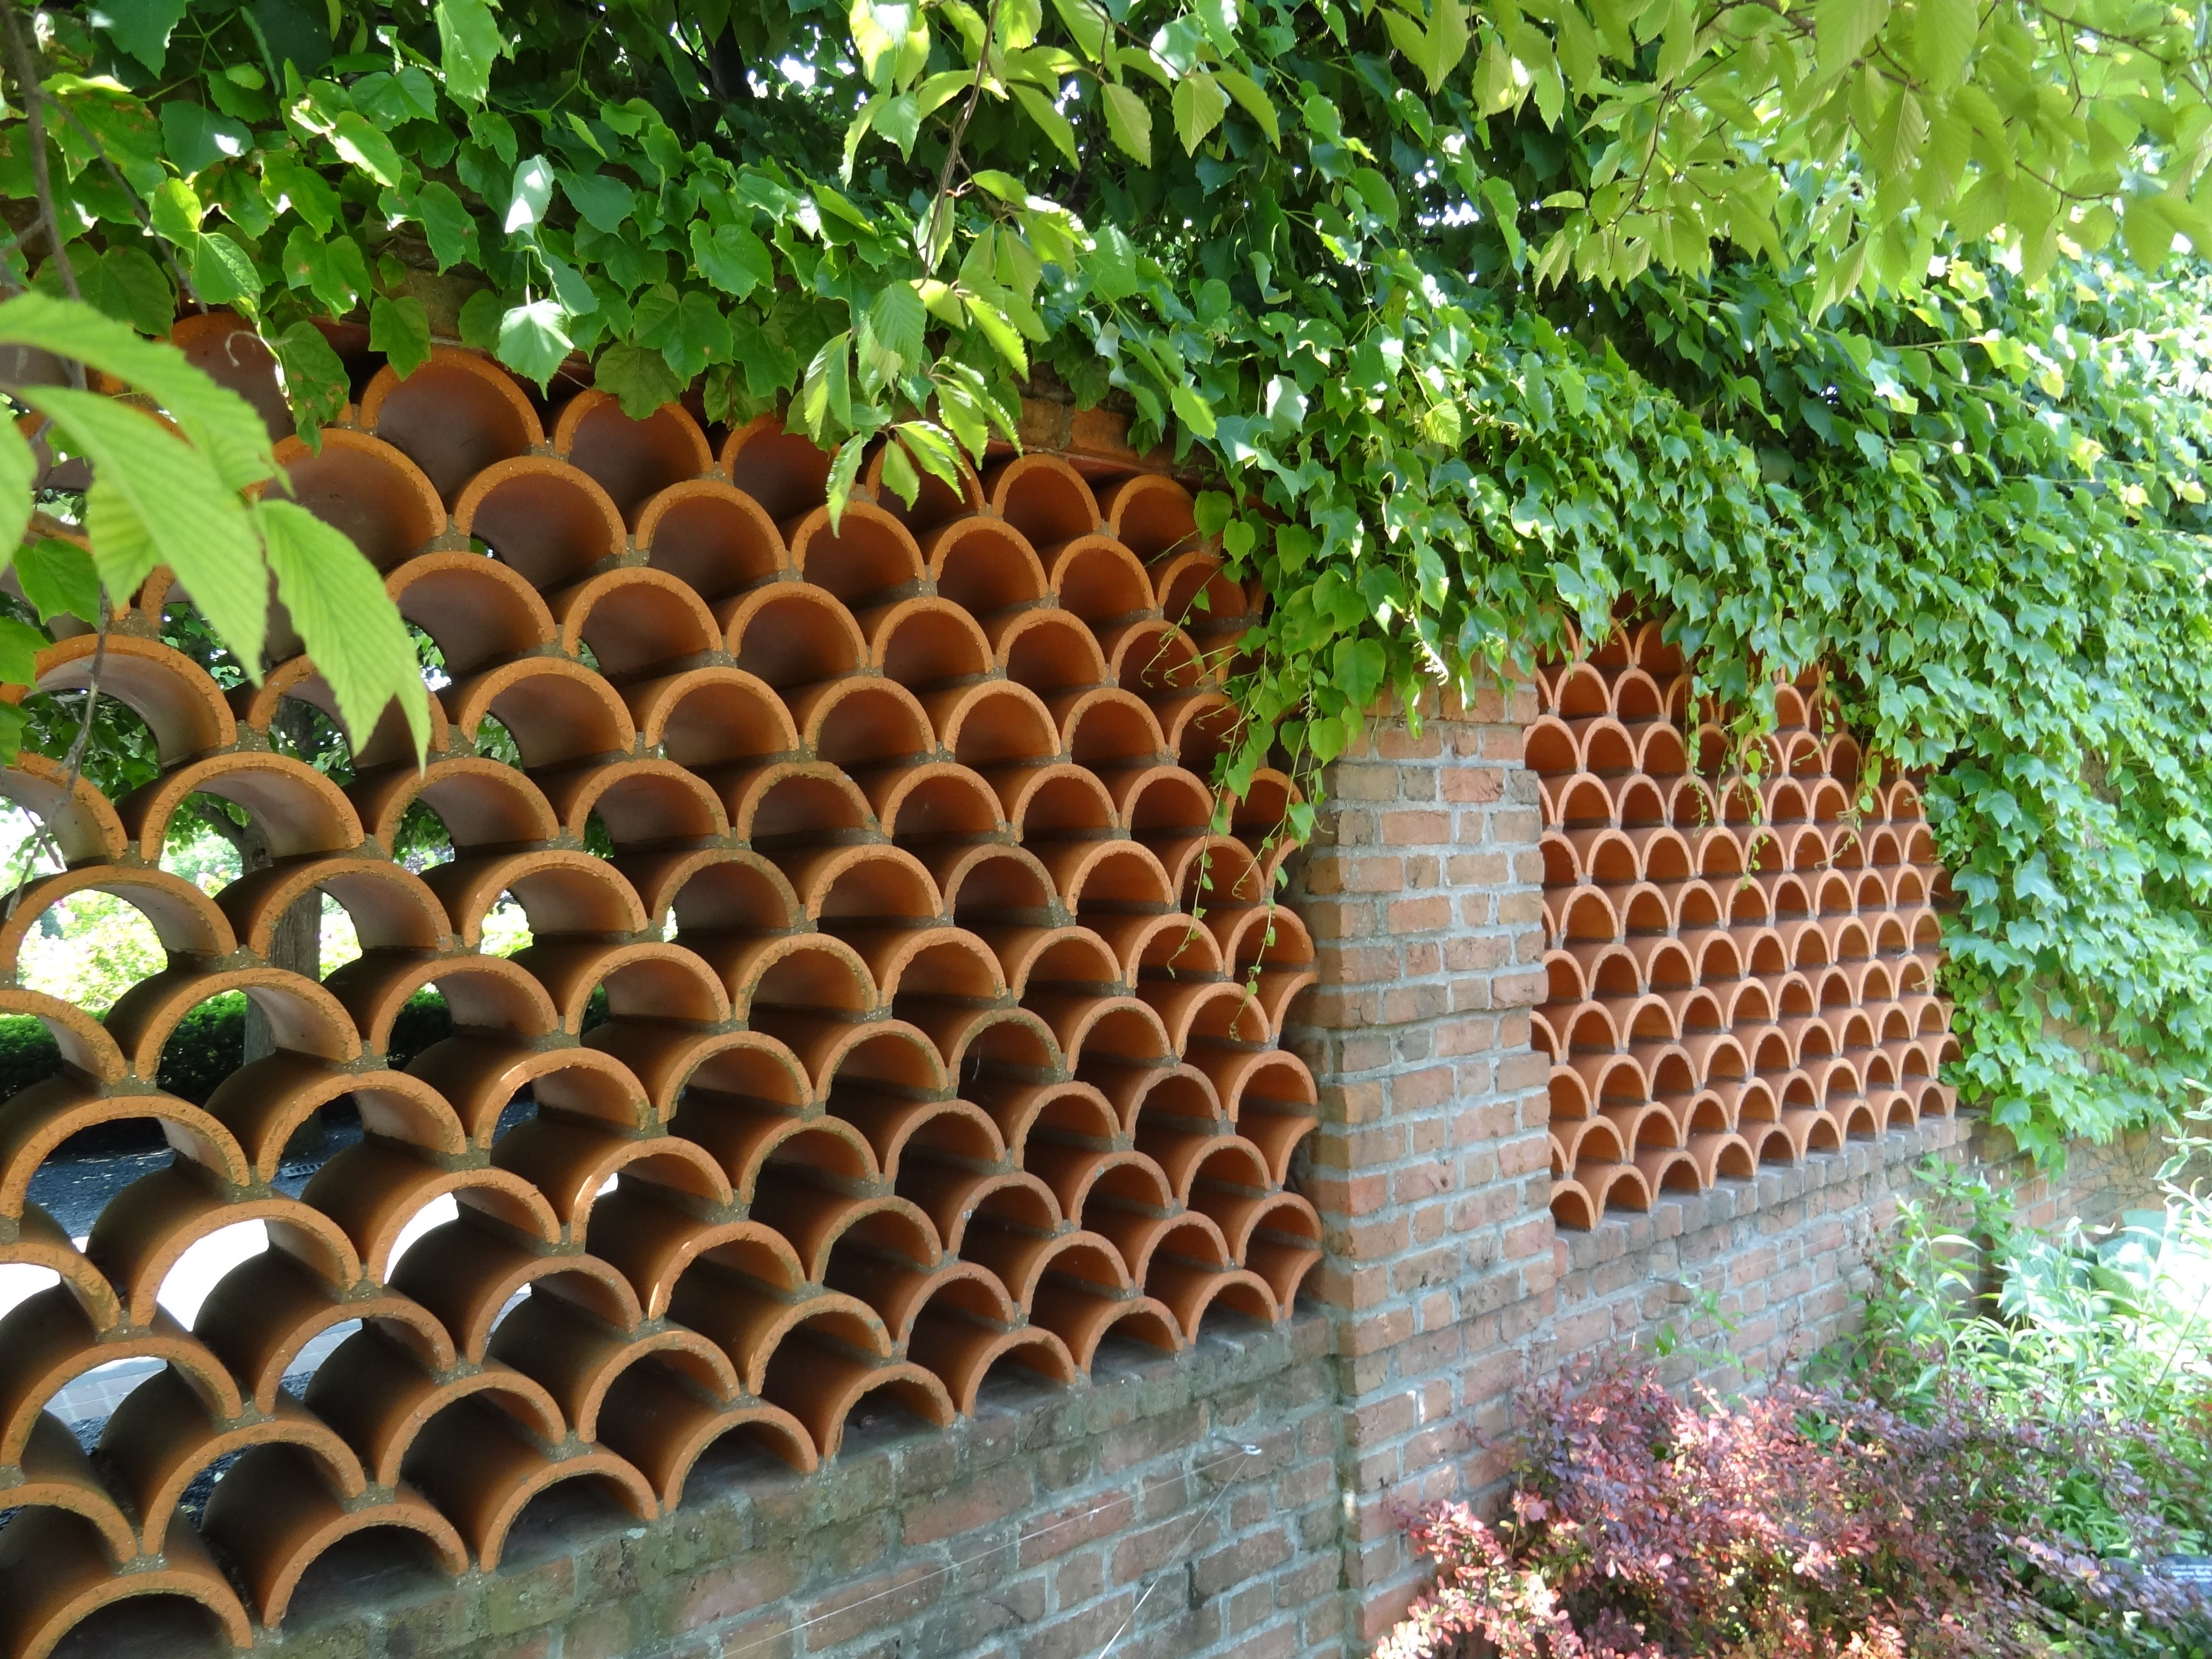 terracotta tile wall | chicago botanic gardens | pinterest